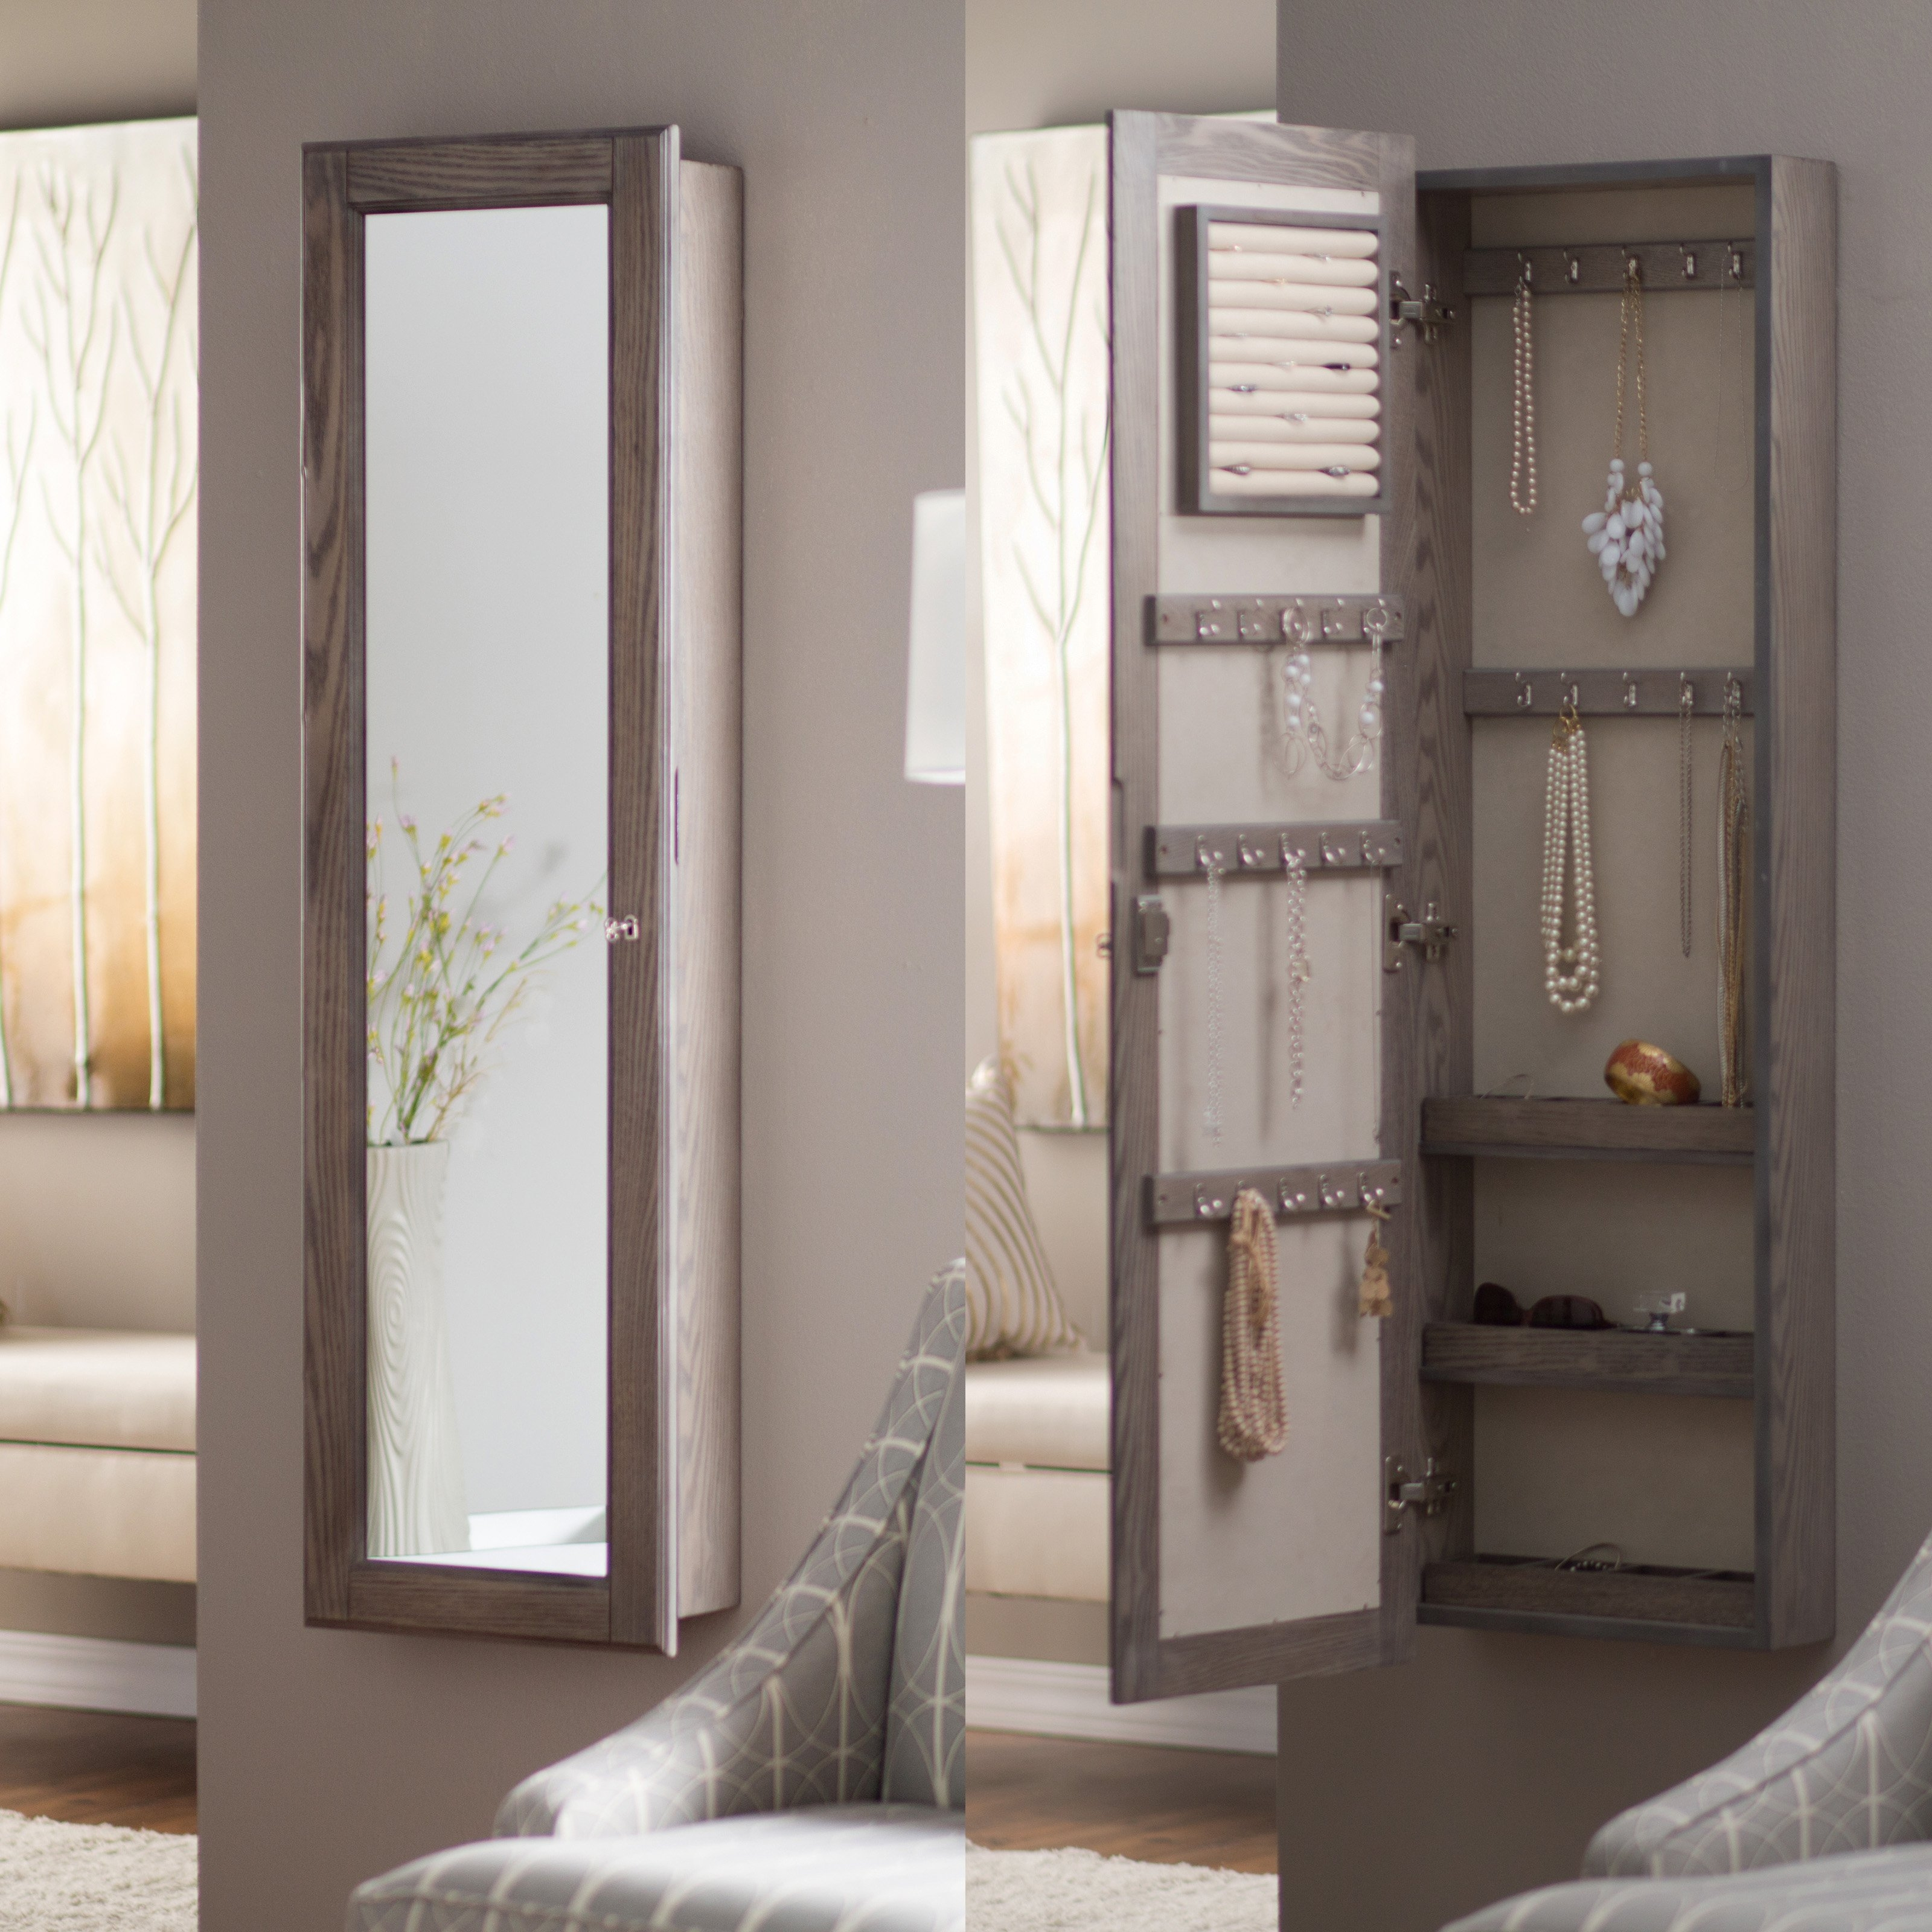 Wall Mounted Mirrored Jewelry Cabinet Wall Mounted Mirrored Jewelry Cabinet wall mounted locking mirrored jewelry armoire driftwood 3200 X 3200